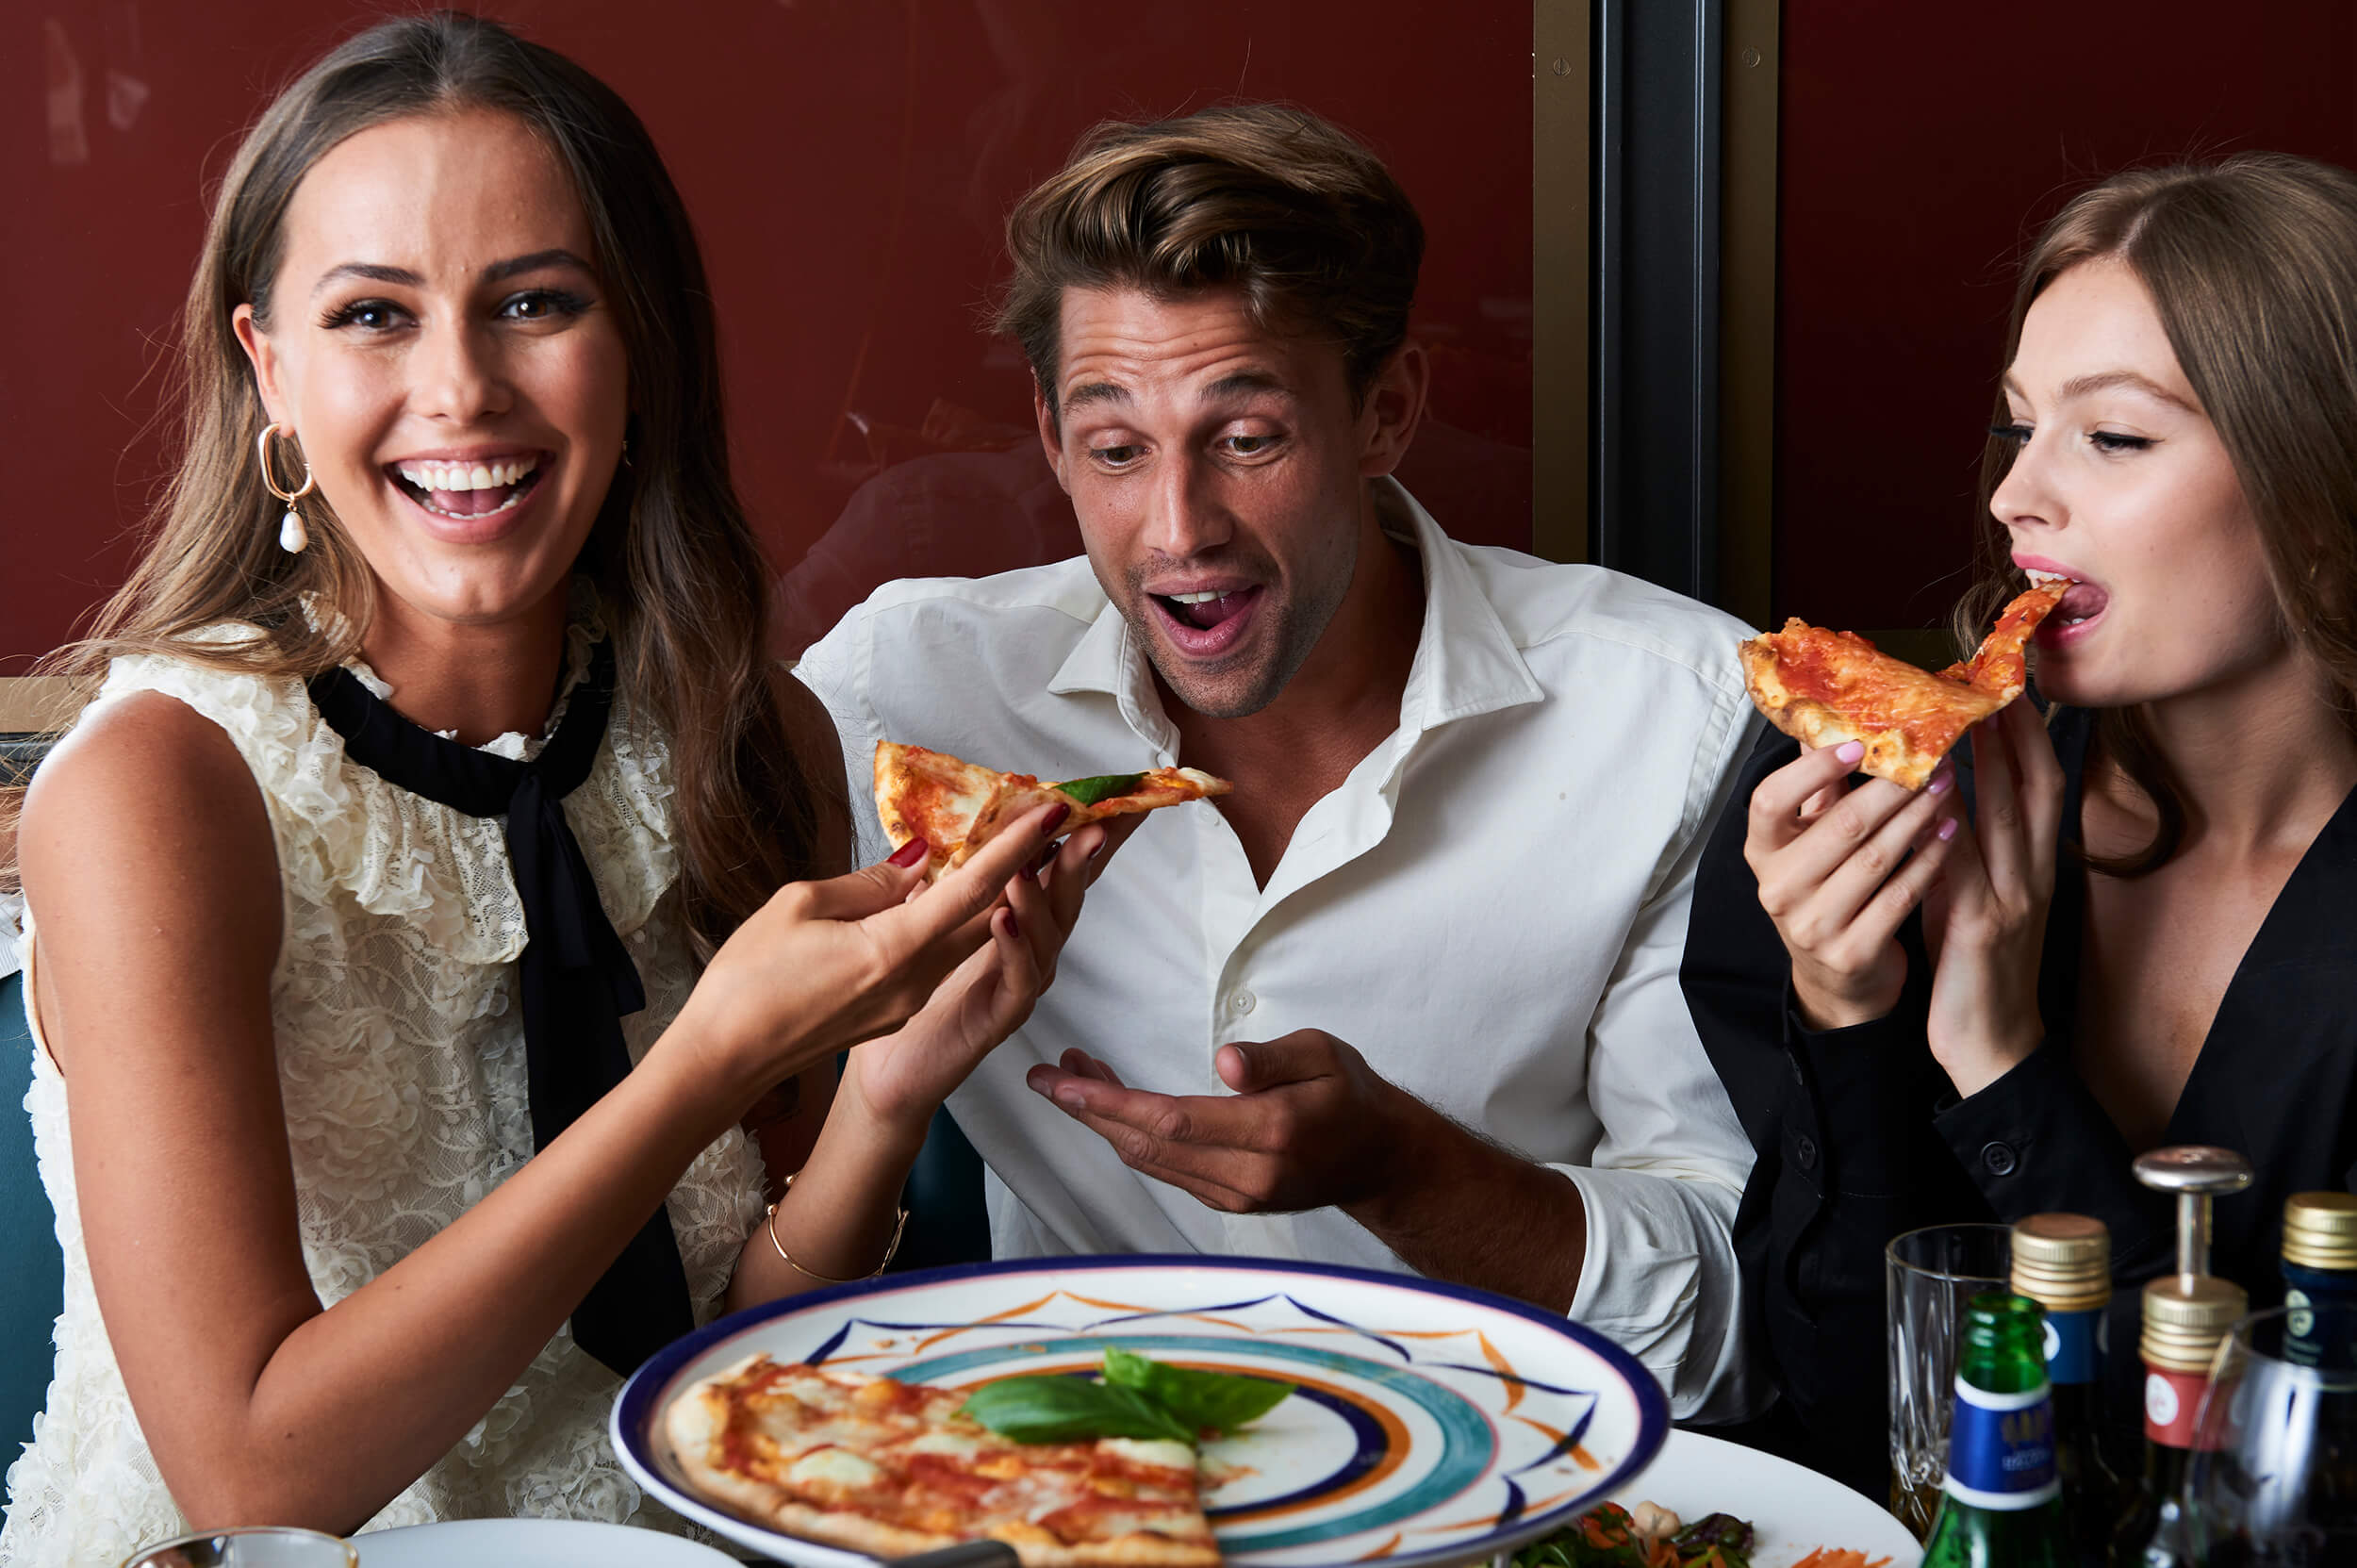 Two woman and a man enjoying pizza, laughing.